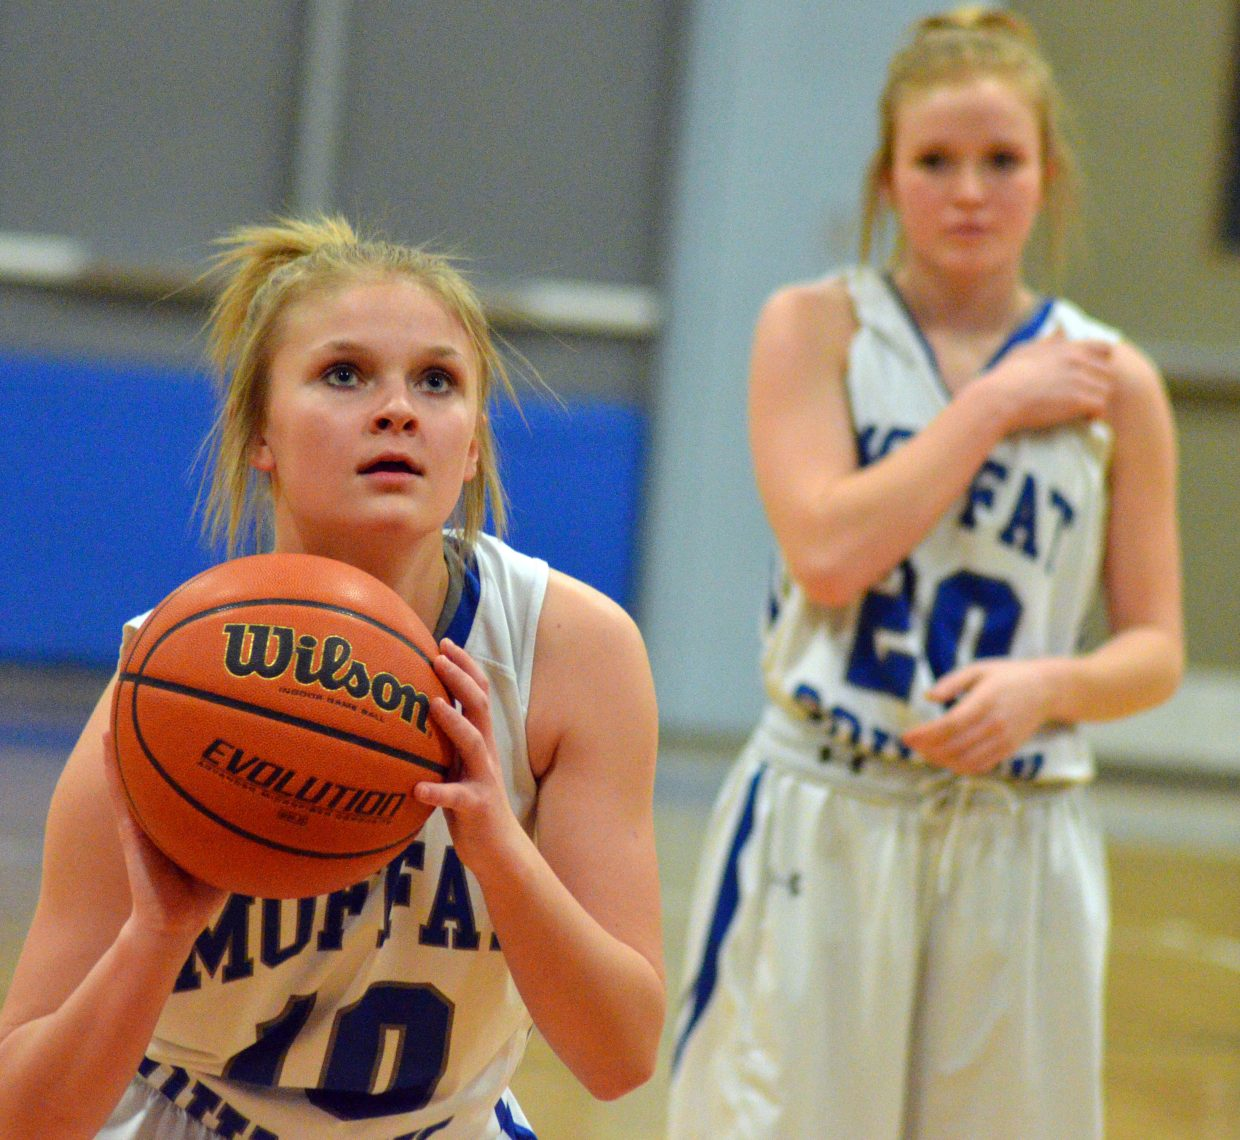 Moffat County High School's Jacie Evenson focuses at the free throw line against Battle Mountain.